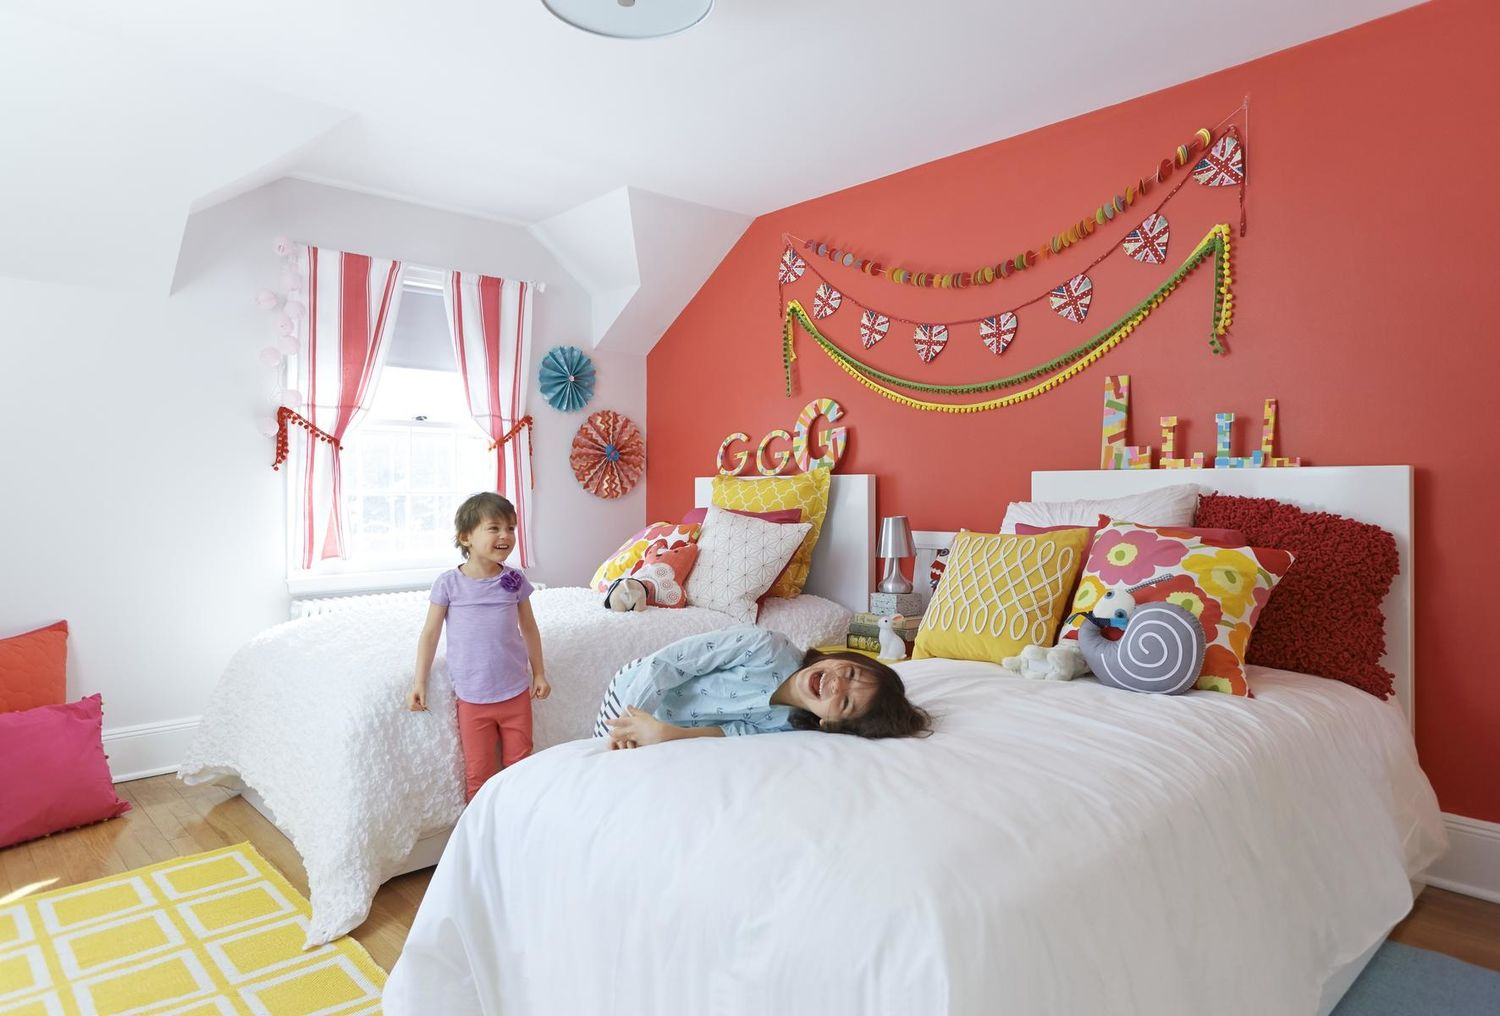 Inexpensive and colorful kids 39 bedroom ideas - Children s room interior images ...